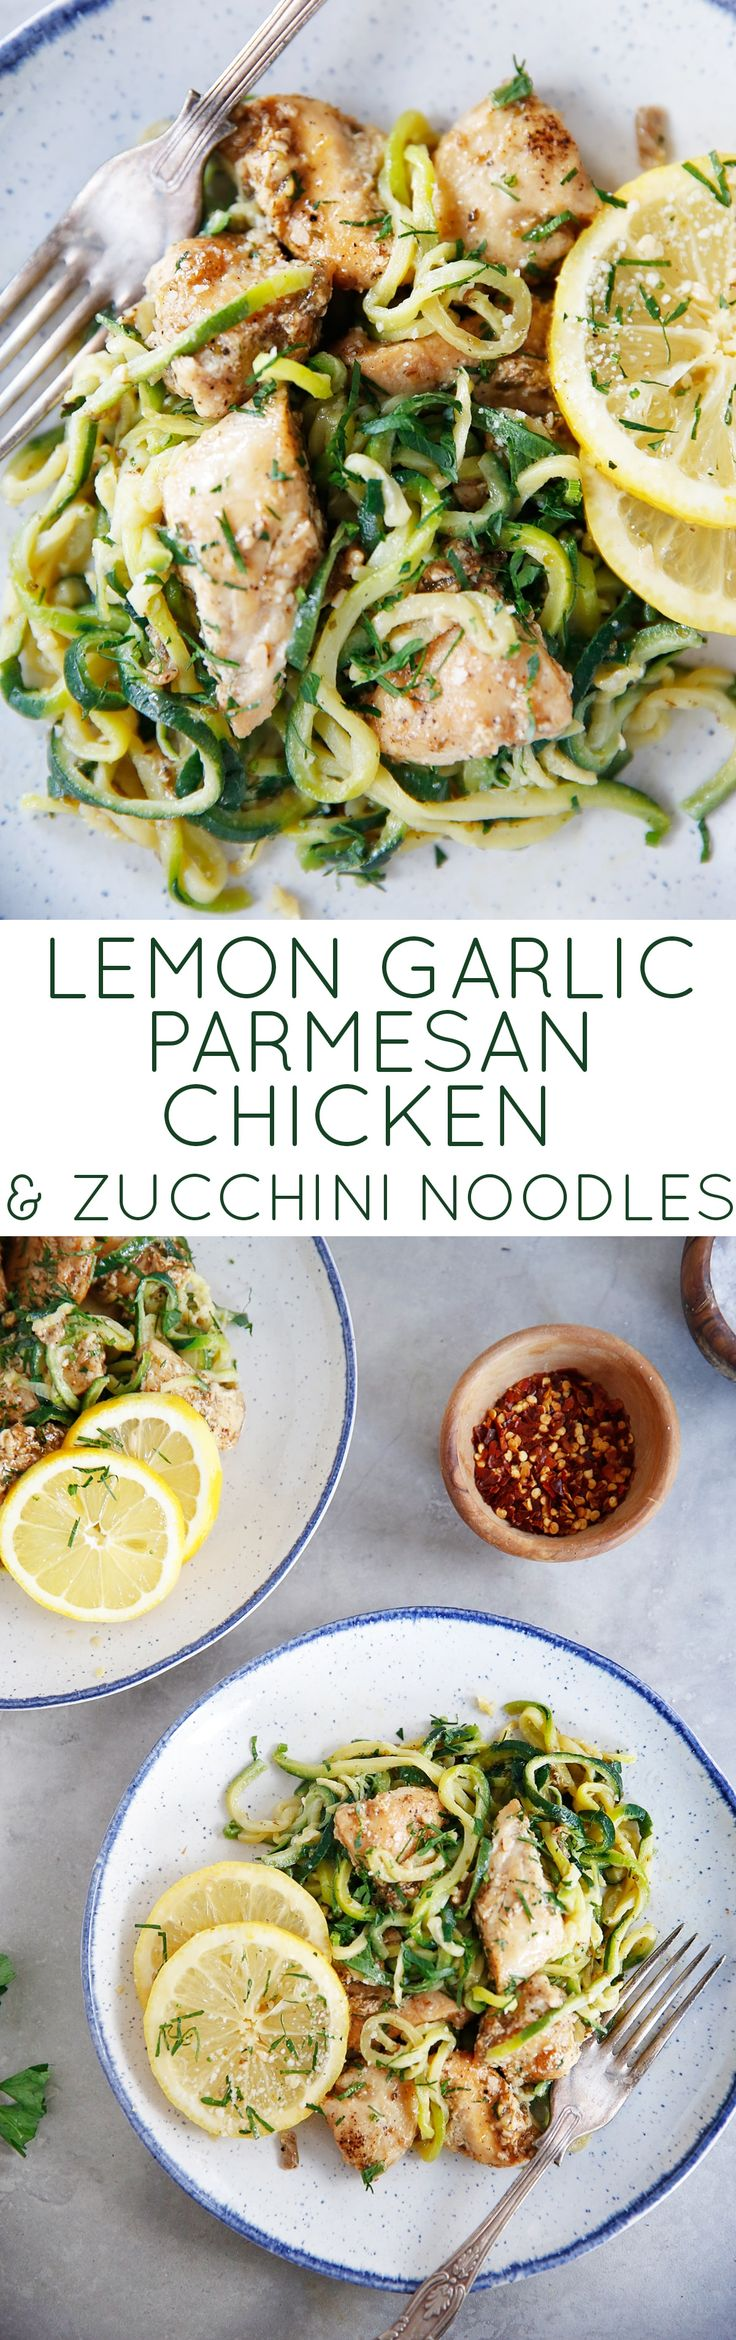 Lemon Parmesan Chicken with Zucchini Noodles - Lexi's Clean Kitchen #lemon #parmesan #chicken #paleo #zucchini #healthy #lowcarb